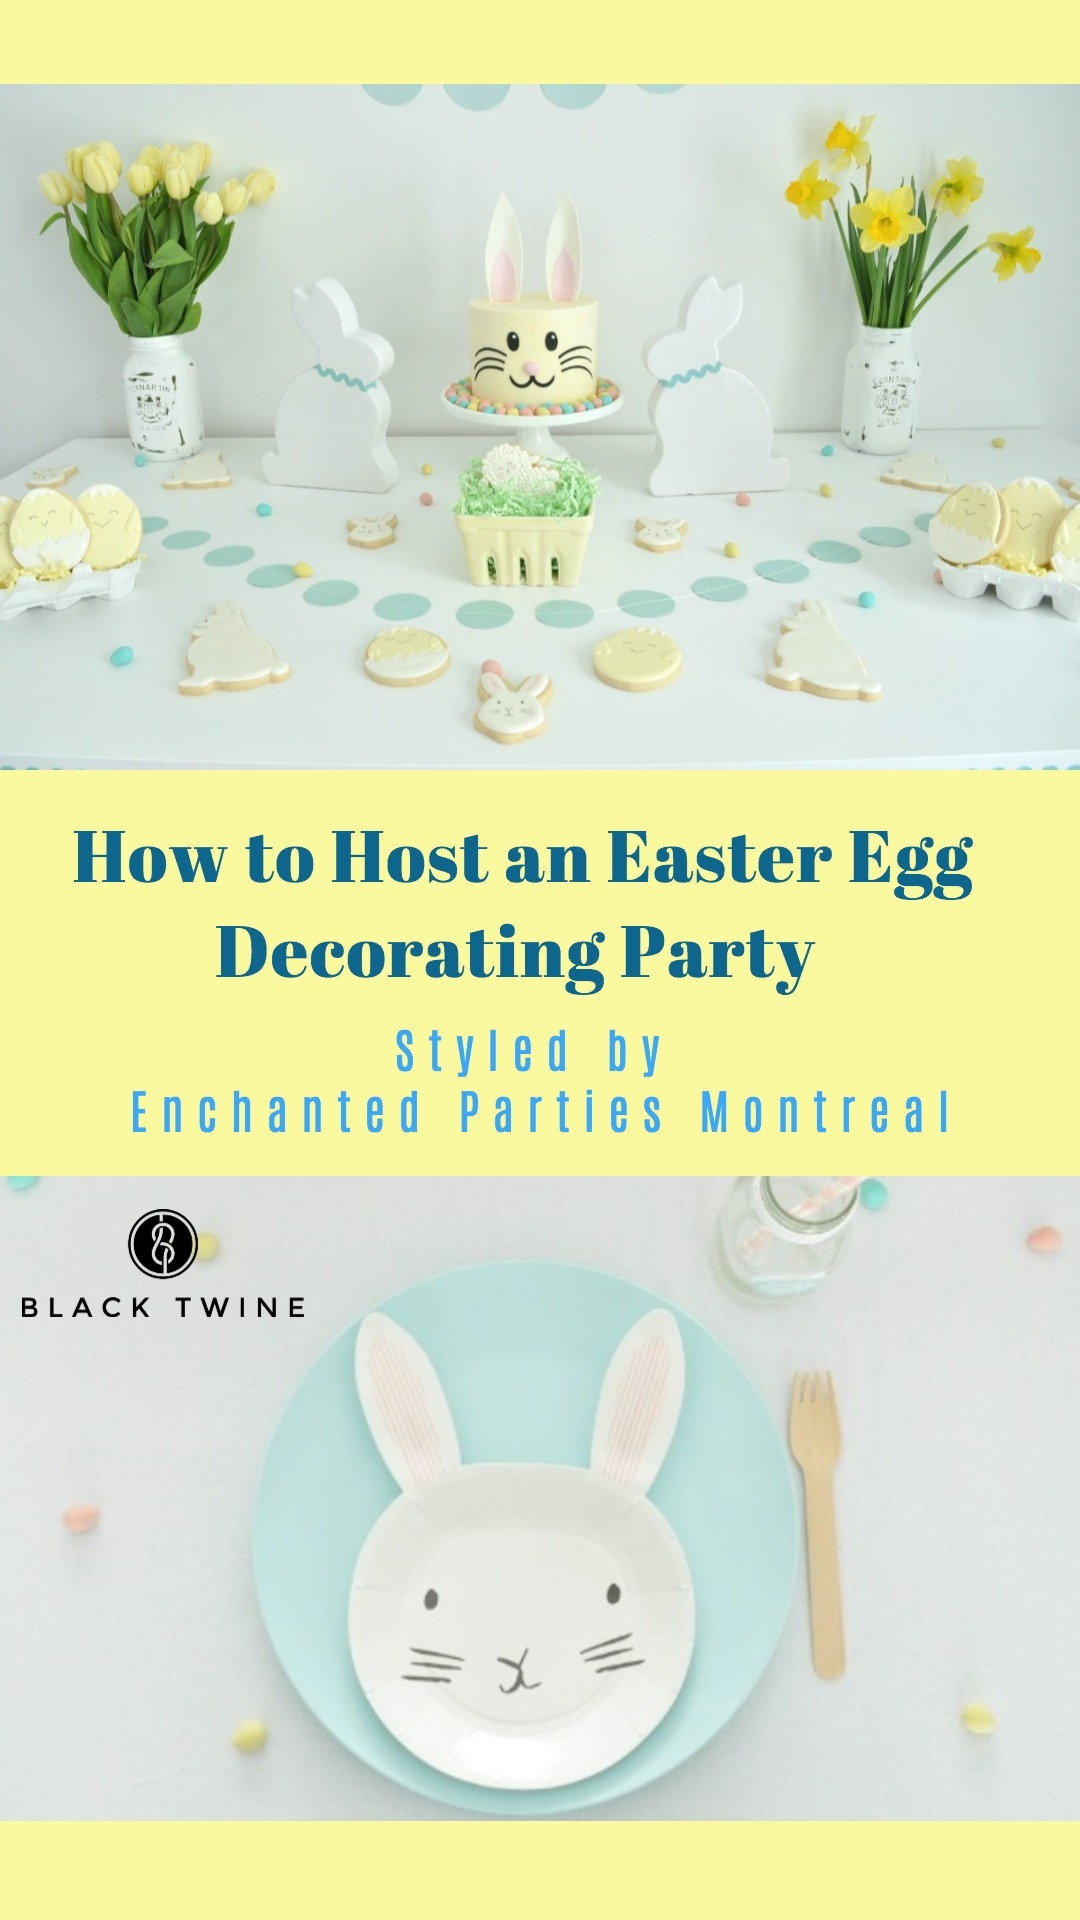 How to Host an Easter Egg Decorating Party Styled by Enchanted Parties Montreal | Black Twine